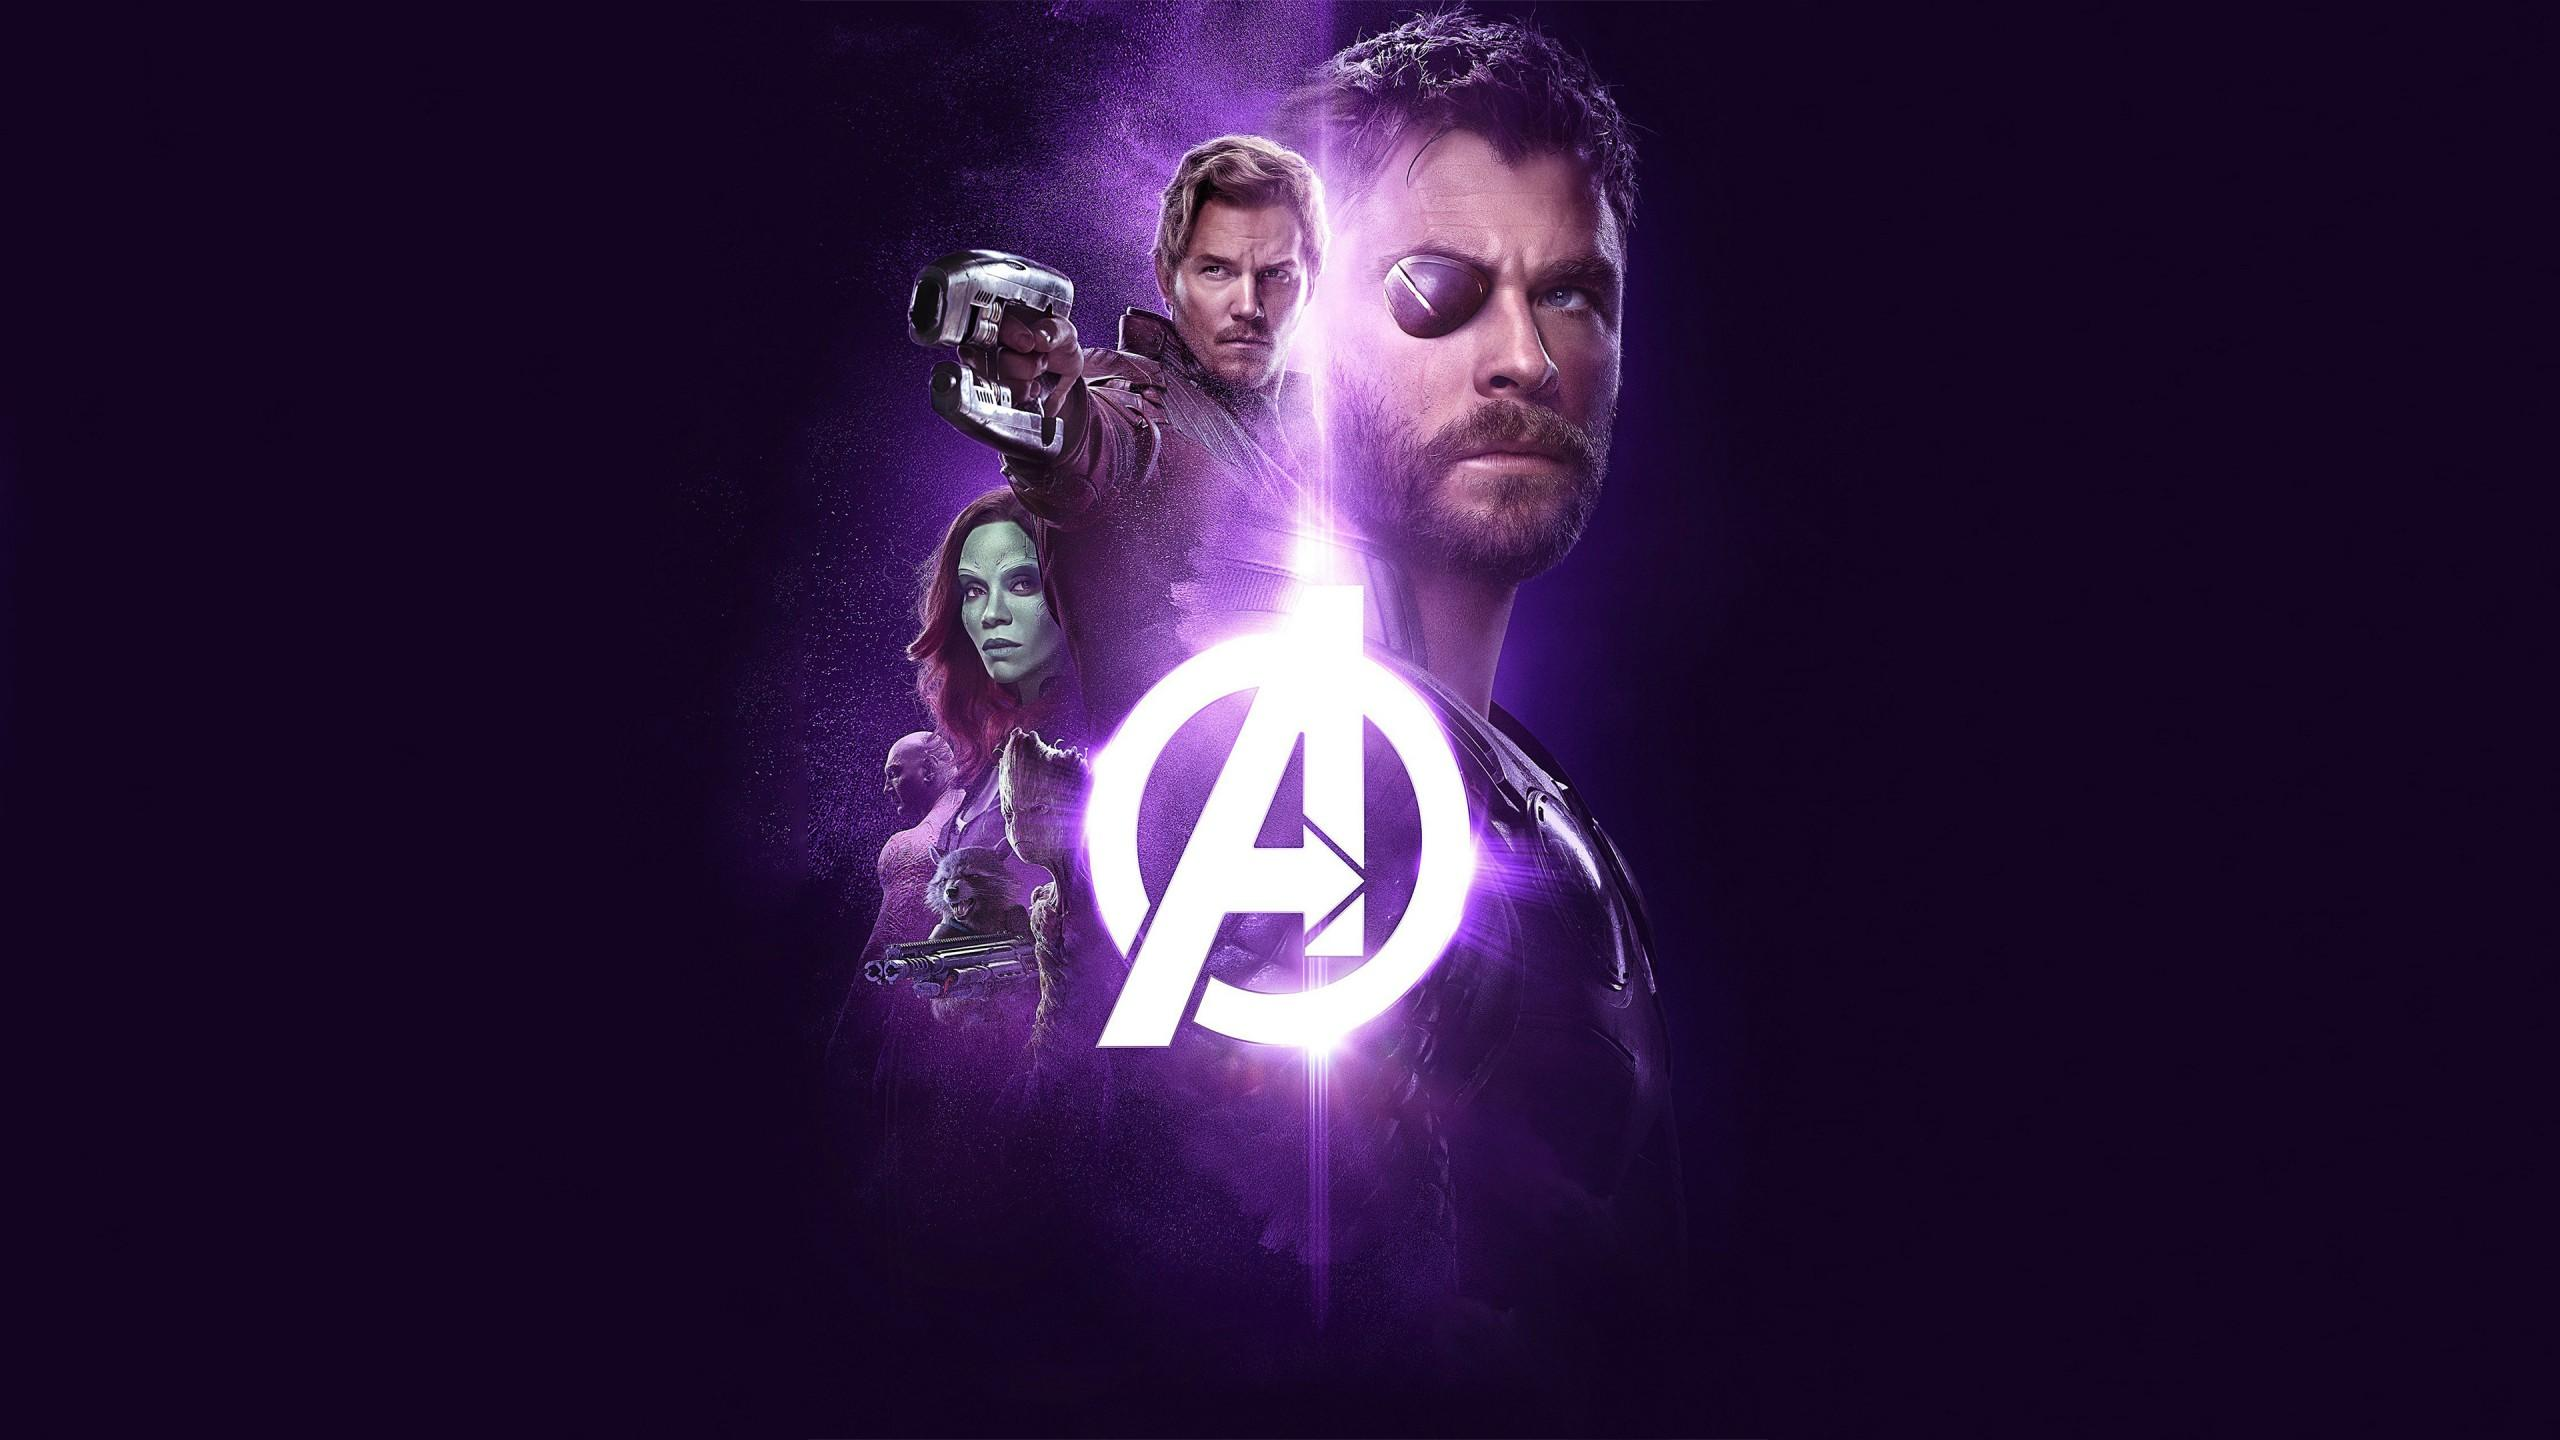 Avengers Infinity War Thor Groot Rocket Star Lord Gamora 4k HD